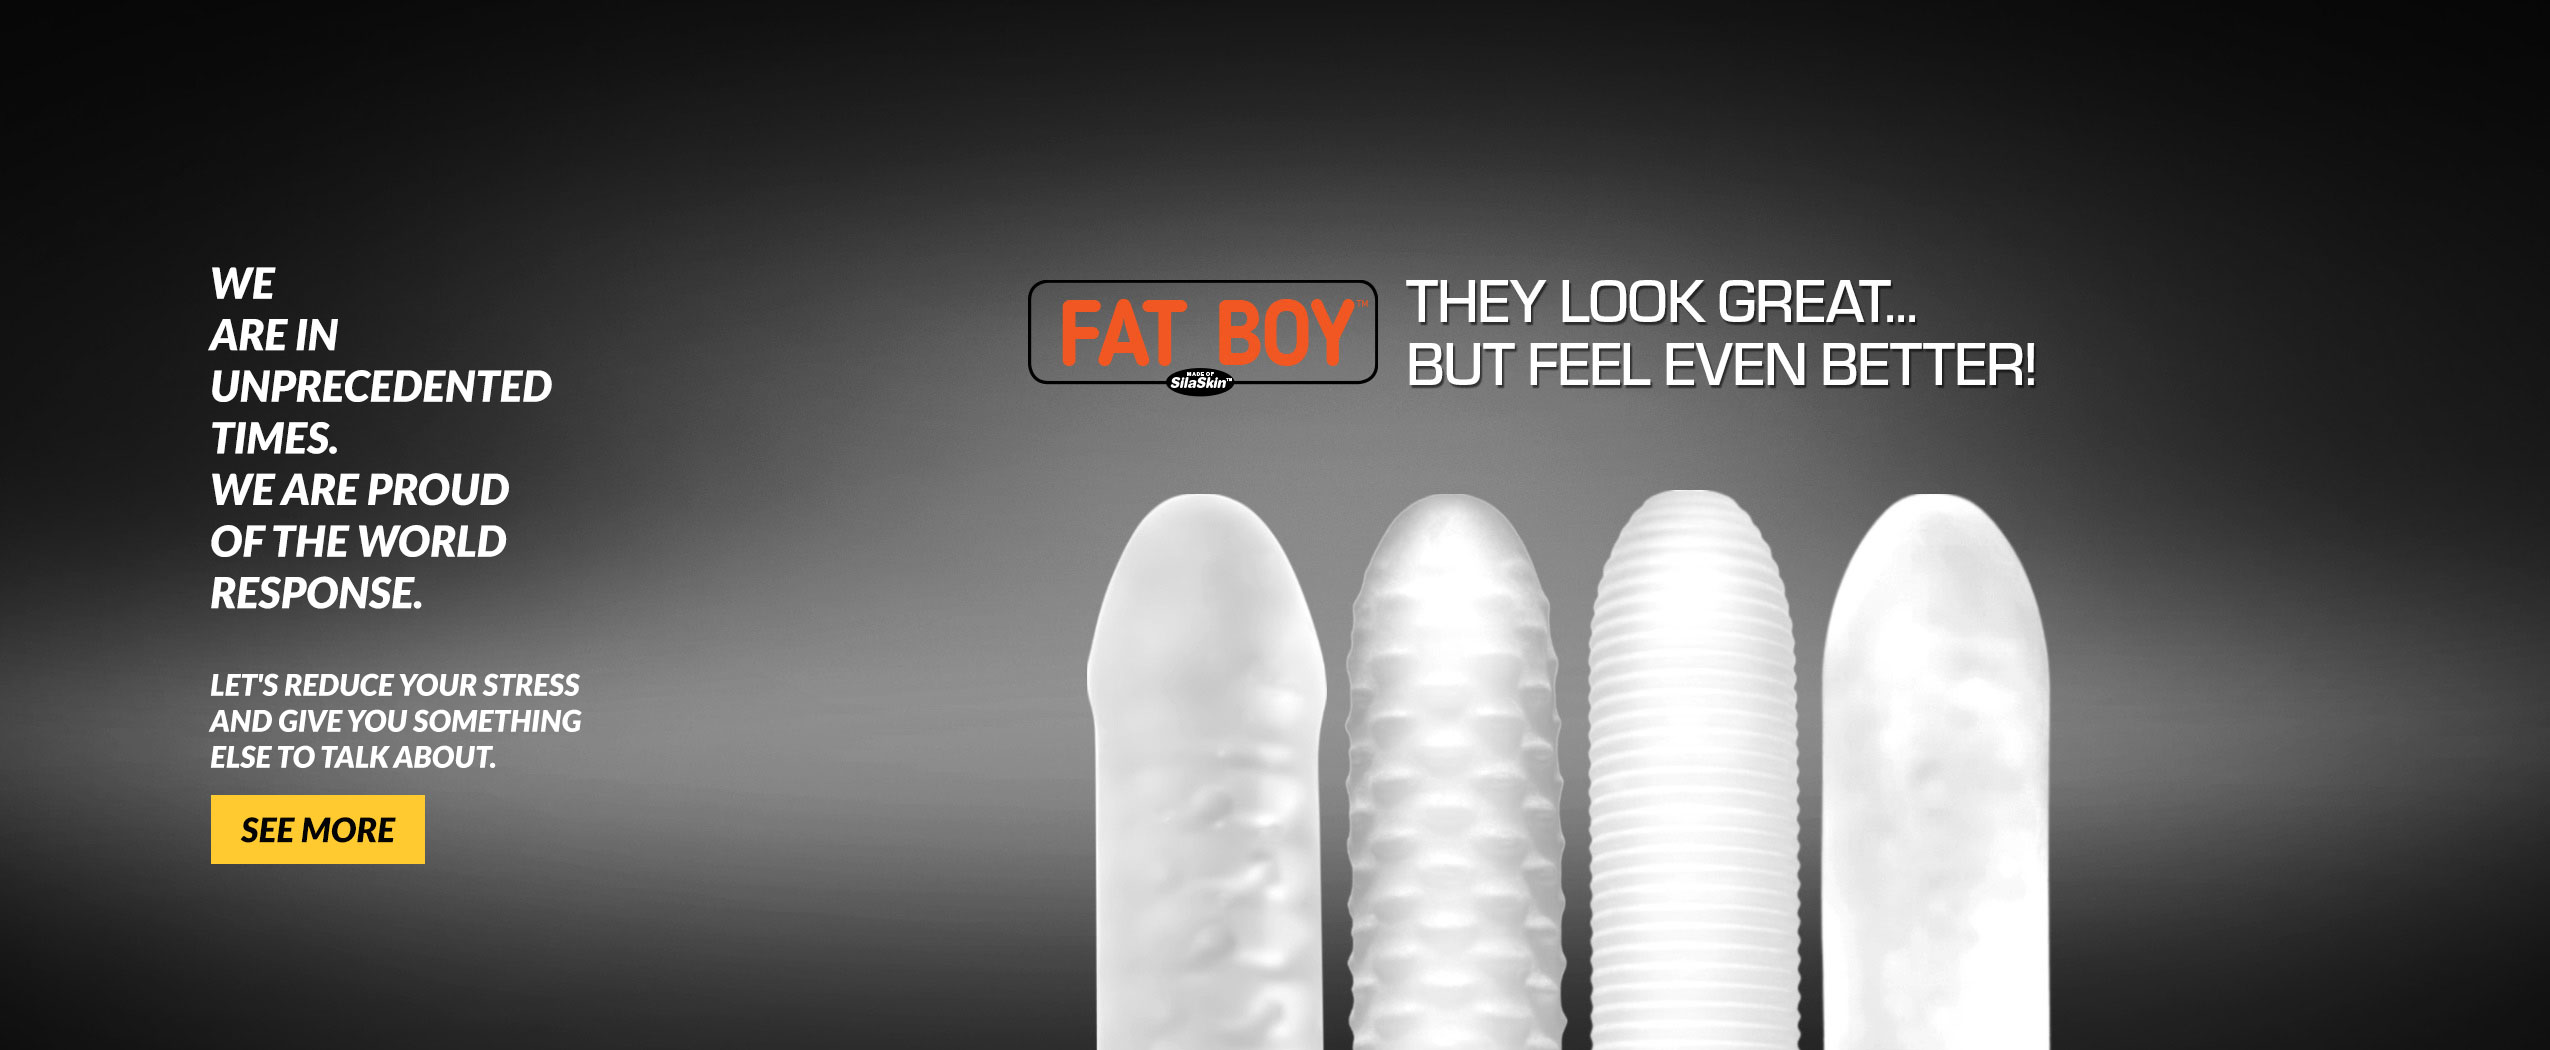 Fat Boy - They Look Great But Feel Even Better